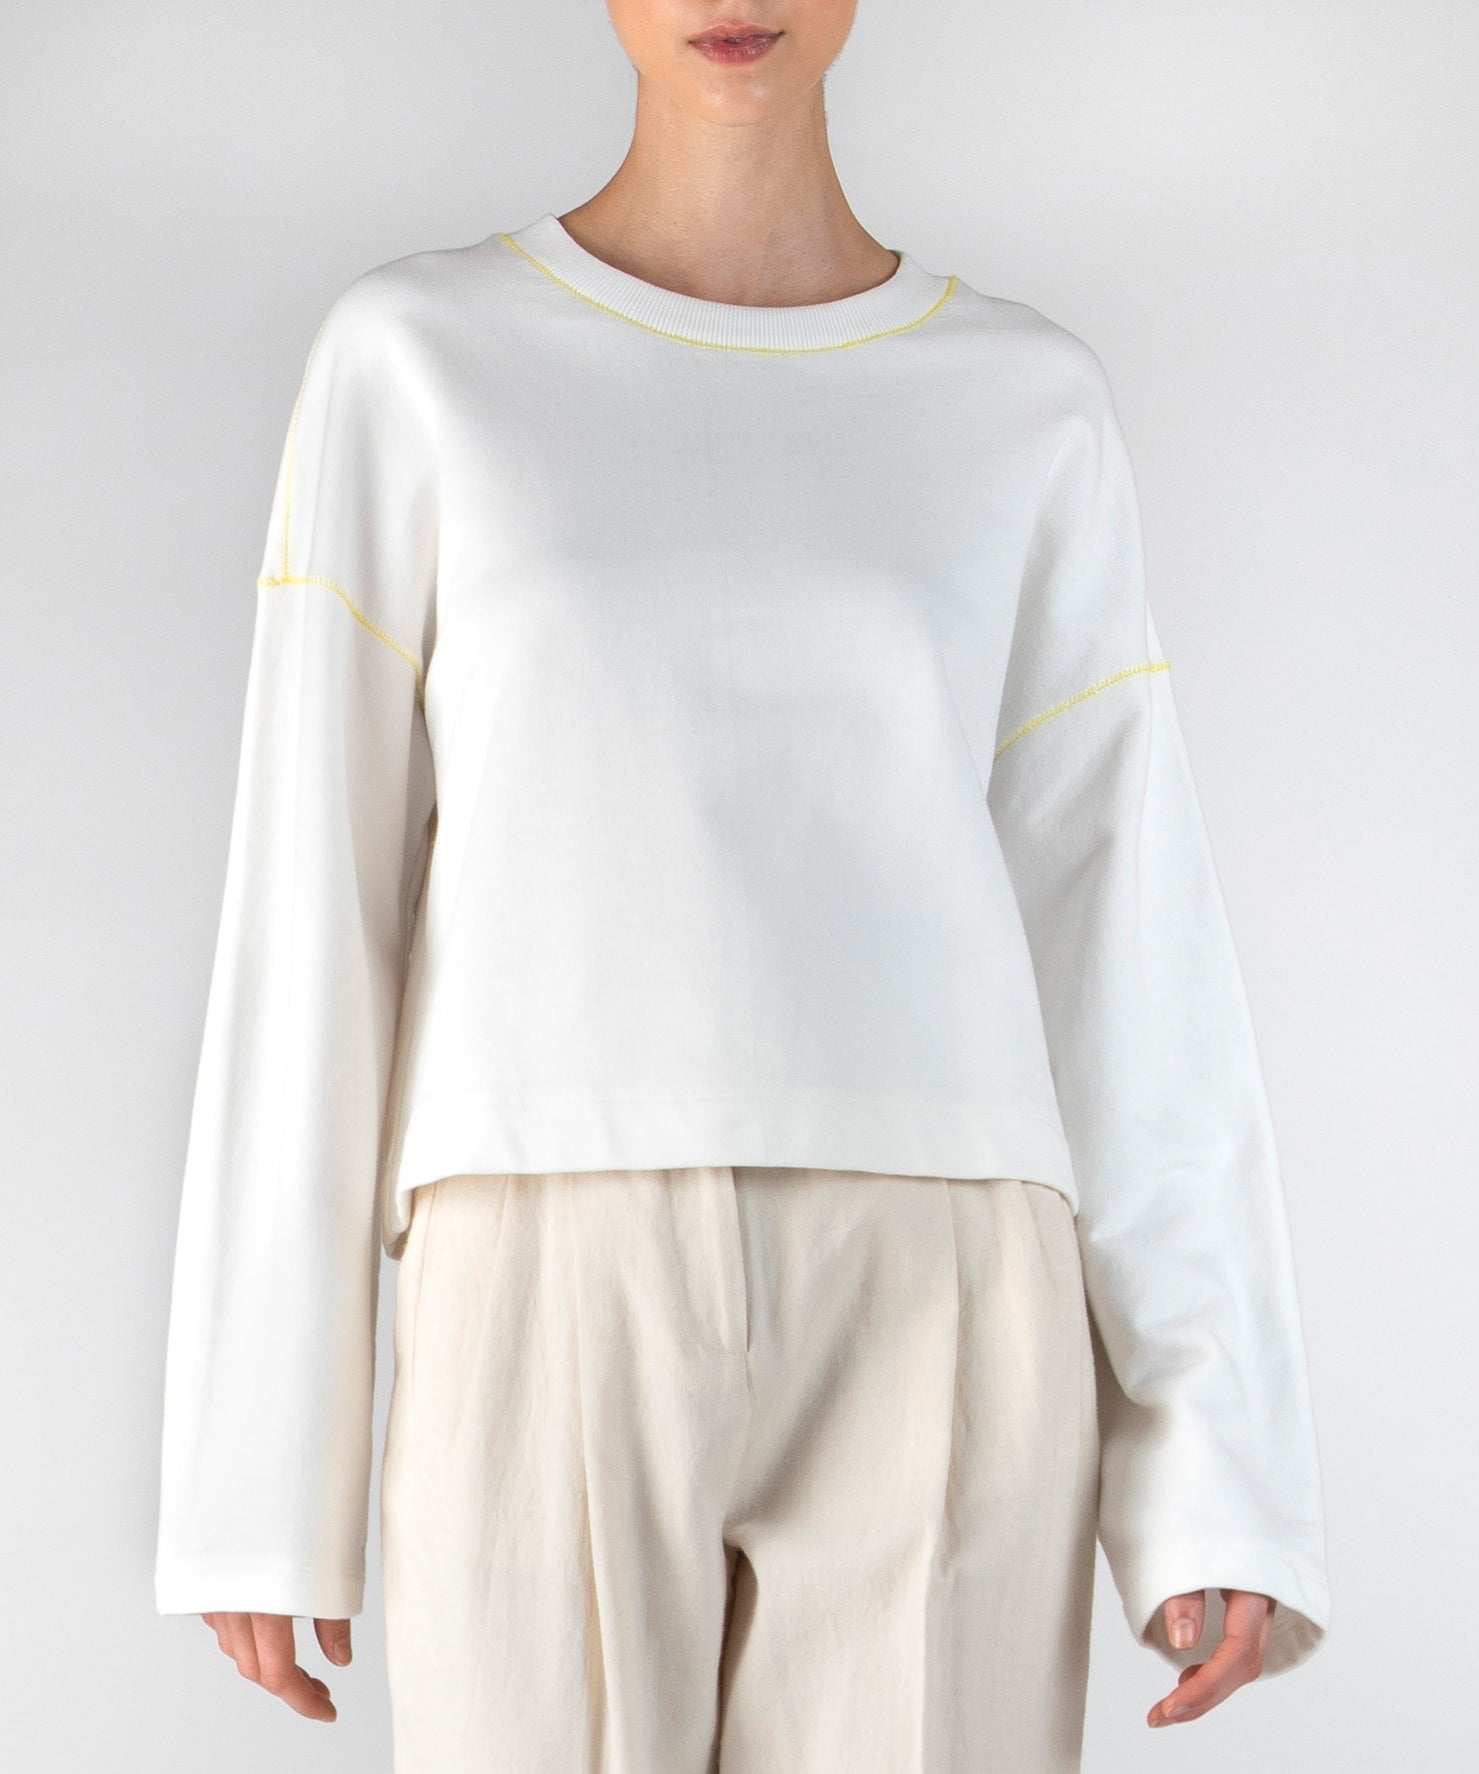 Chalk French Terry Zig Zag Detail Sweatshirt - Women's Luxe Cotton Loungewear by ATM Anthony Thomas Melillo